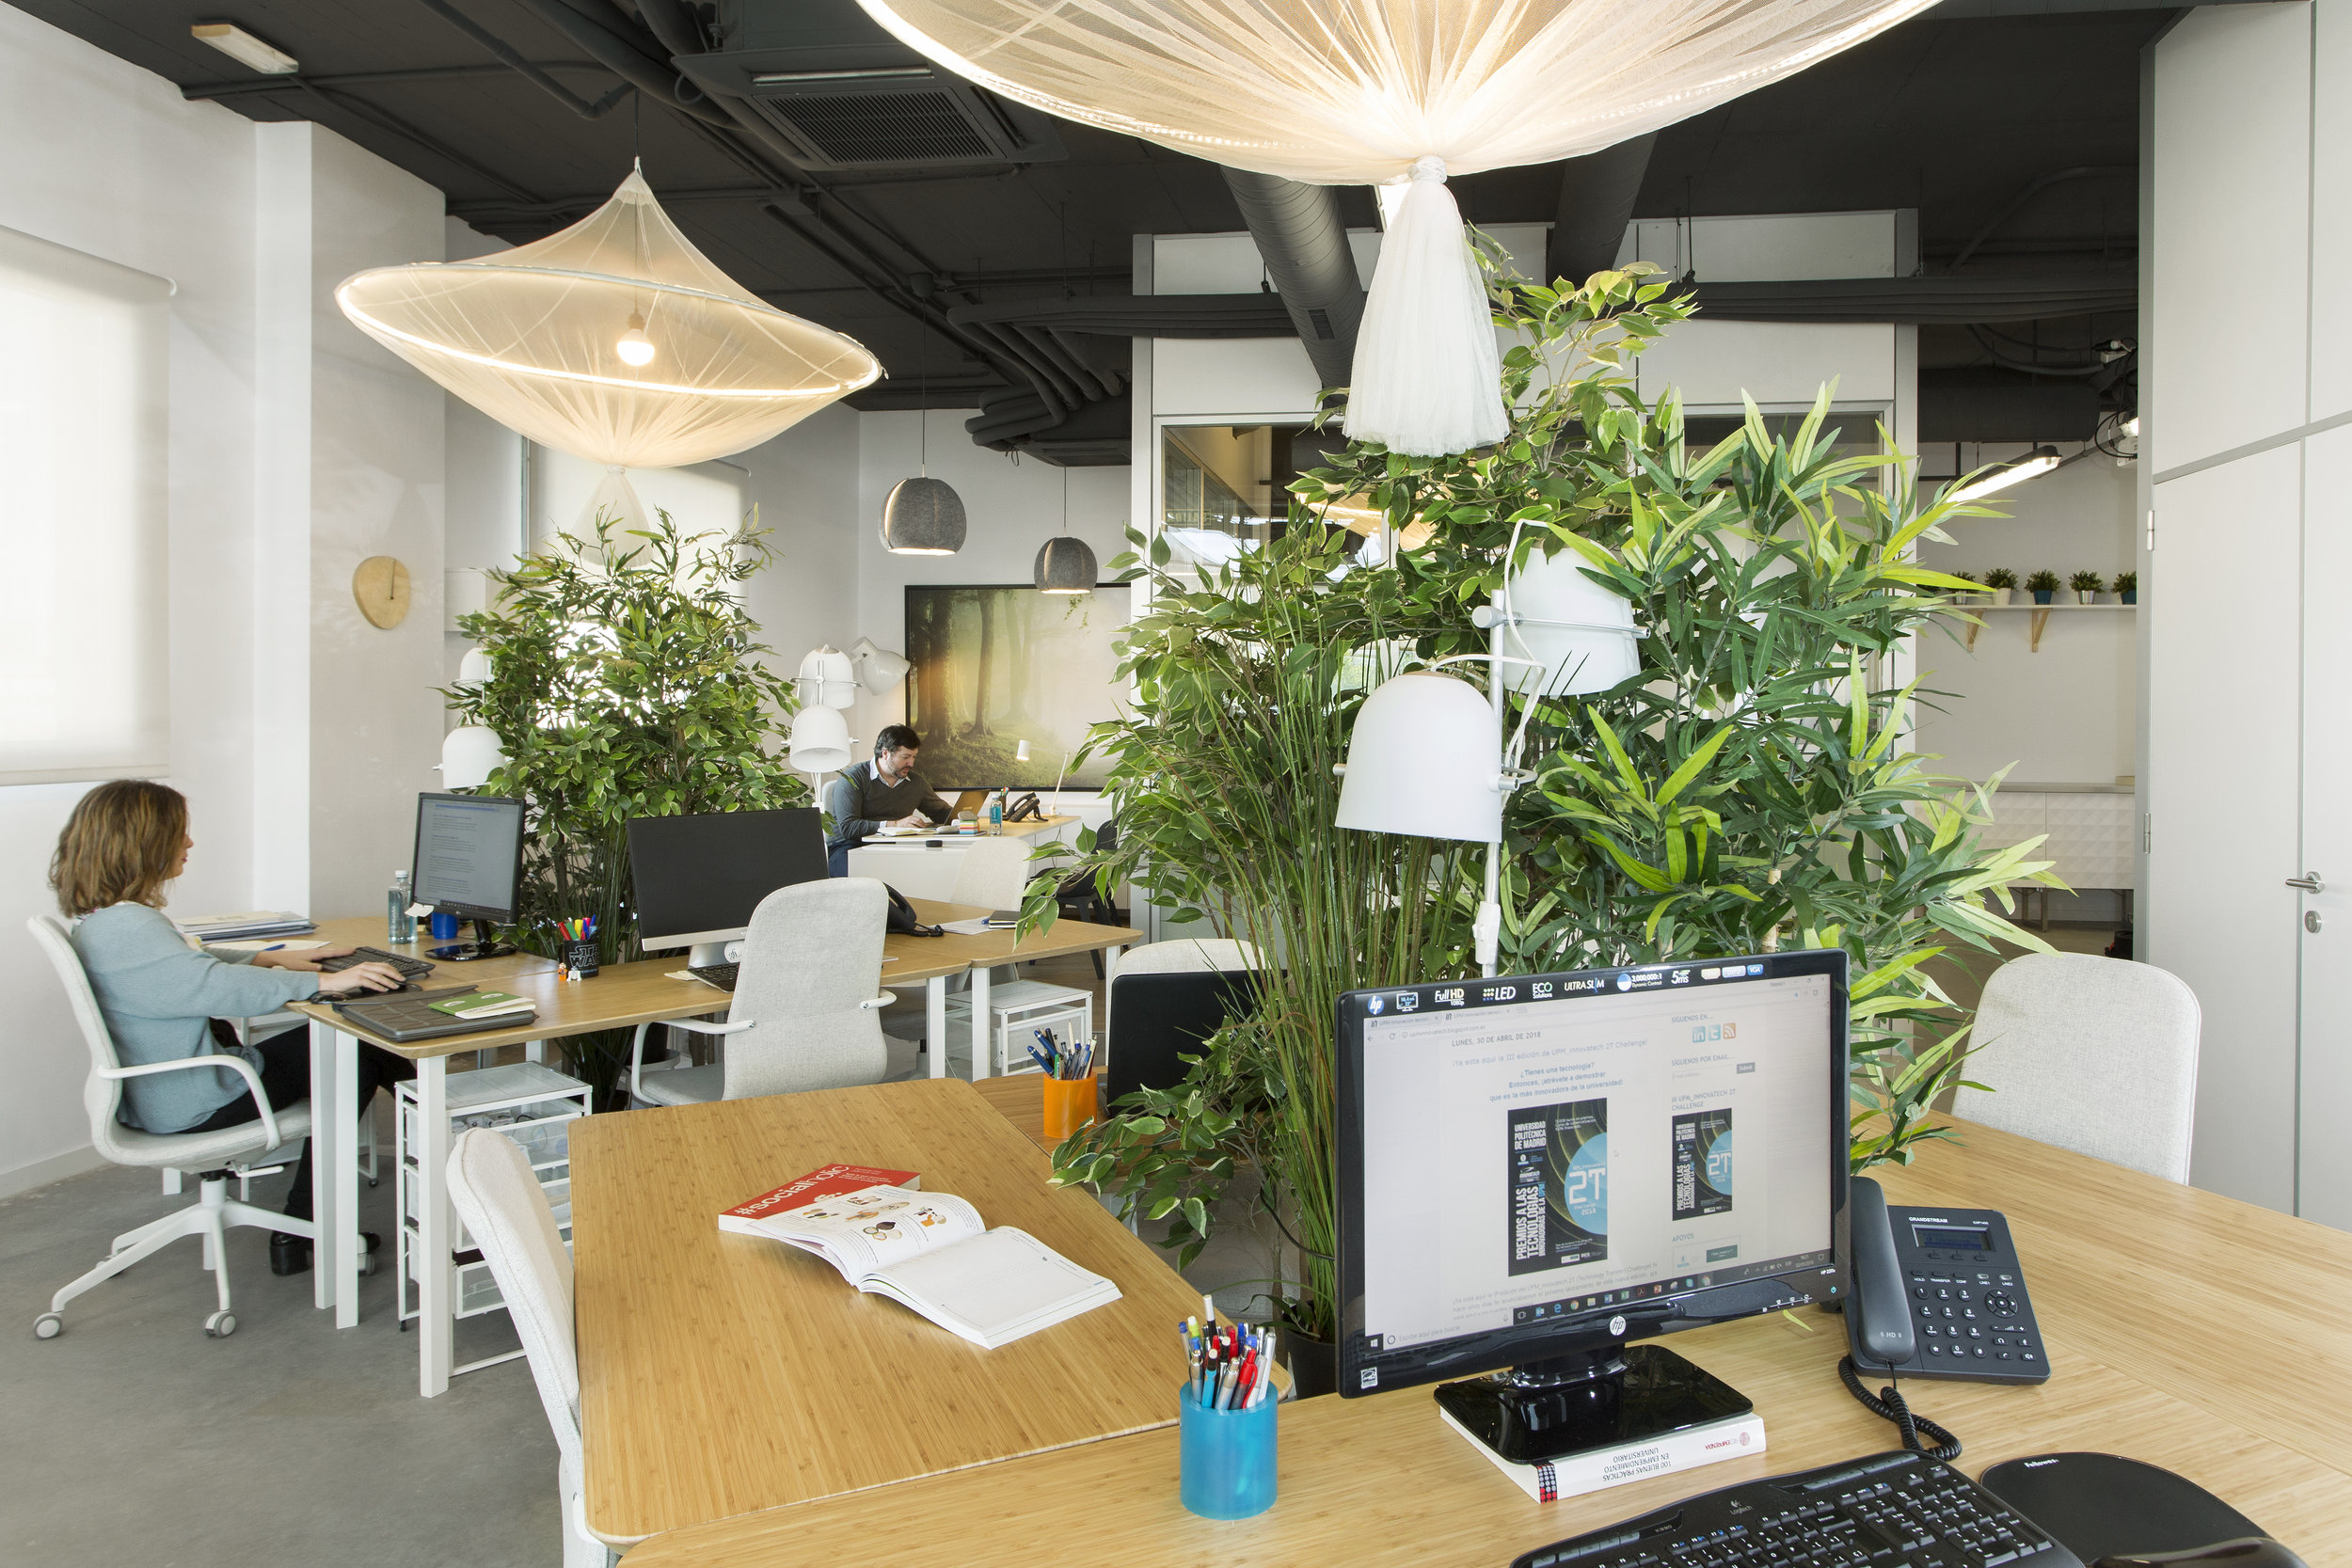 emmme studio slow homeoffice Living LAB_2.jpg